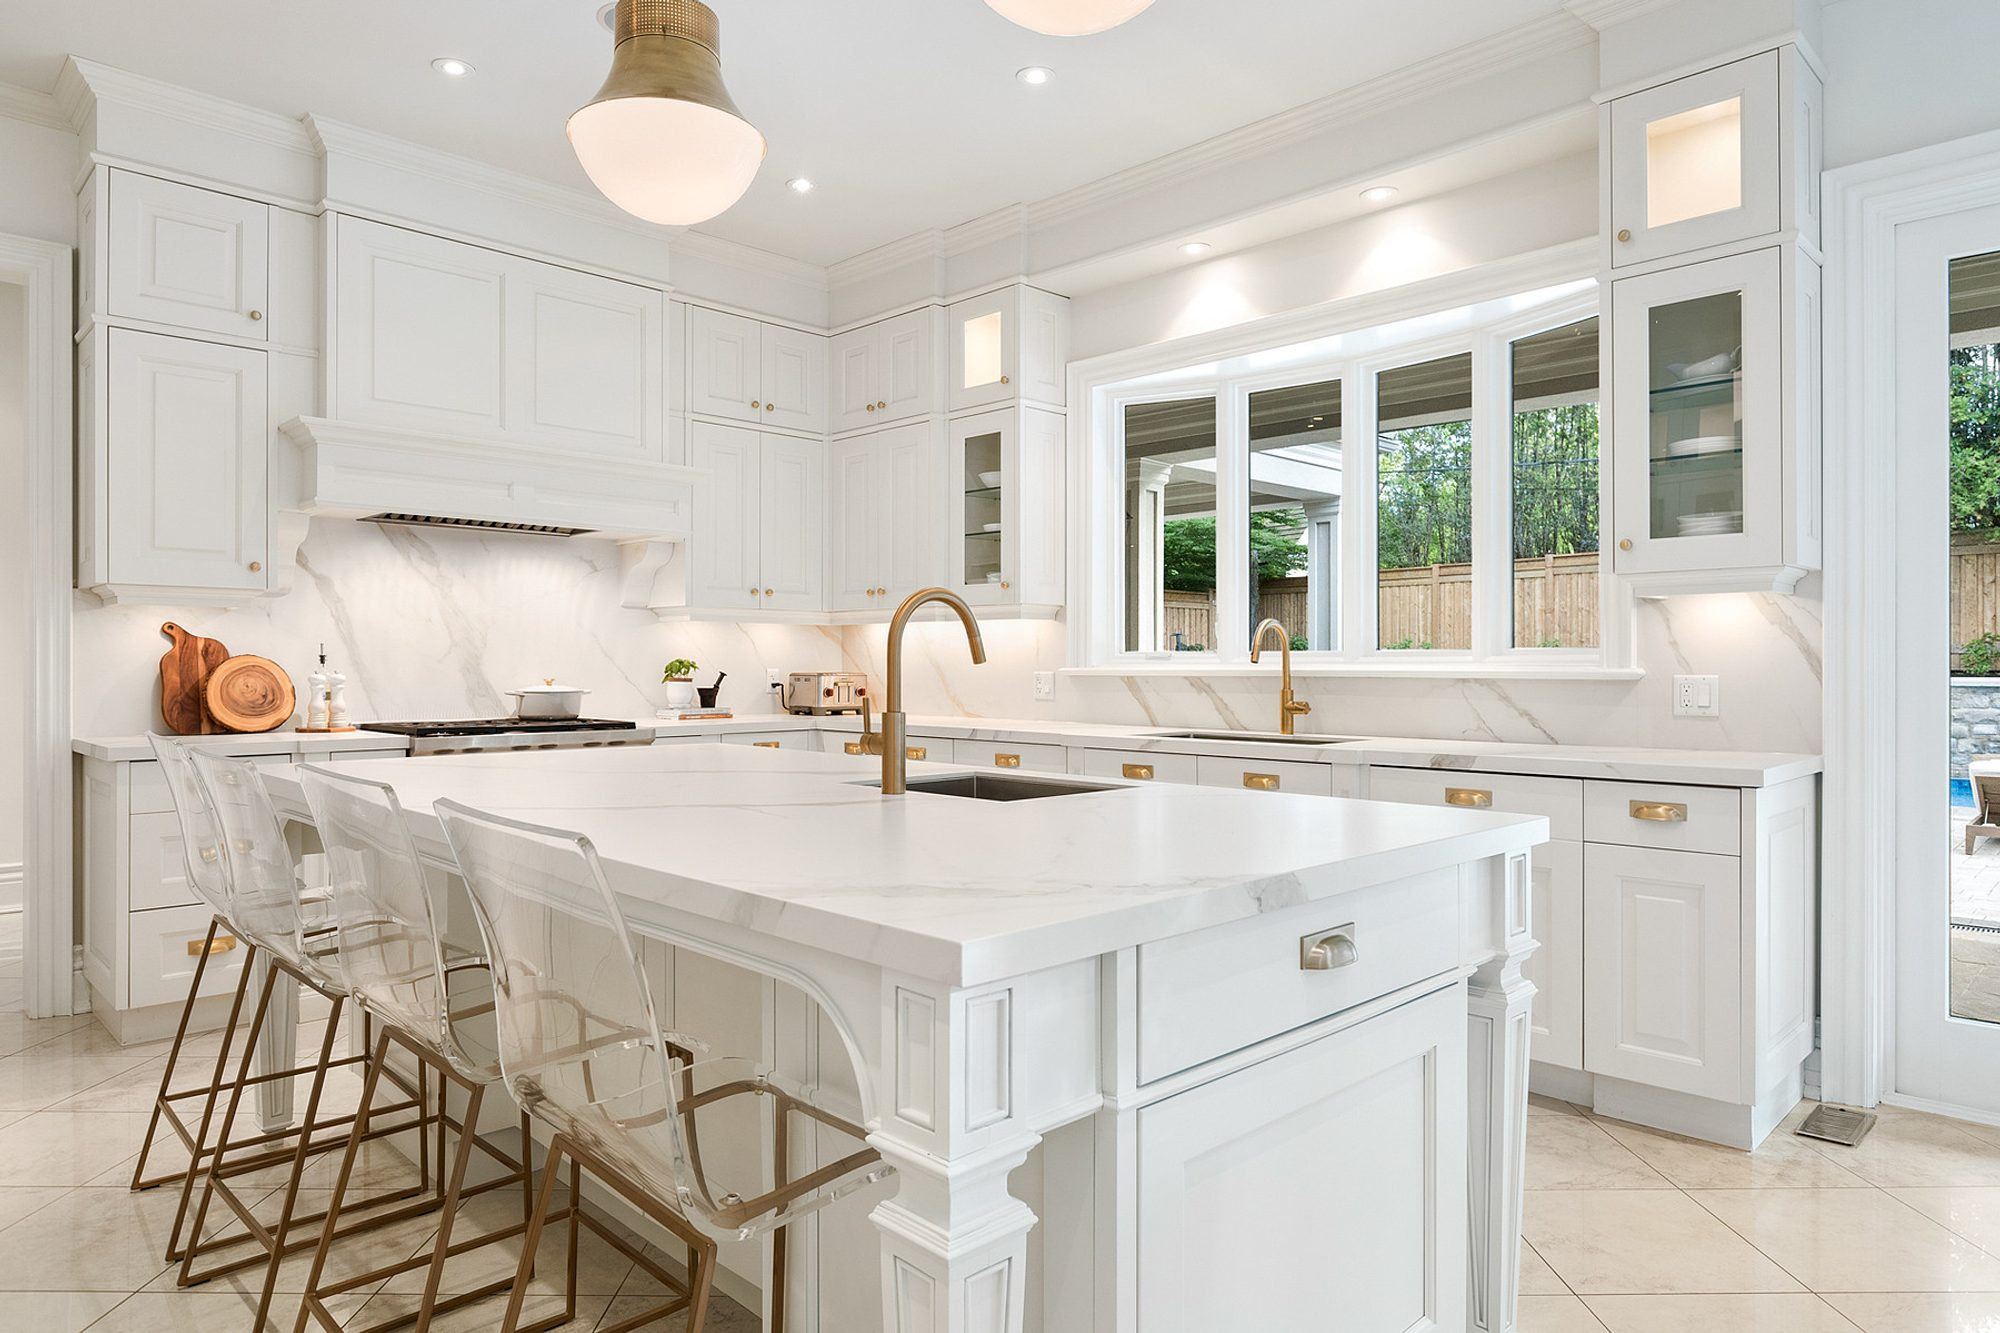 White kitchen cabinets with a matching white island.